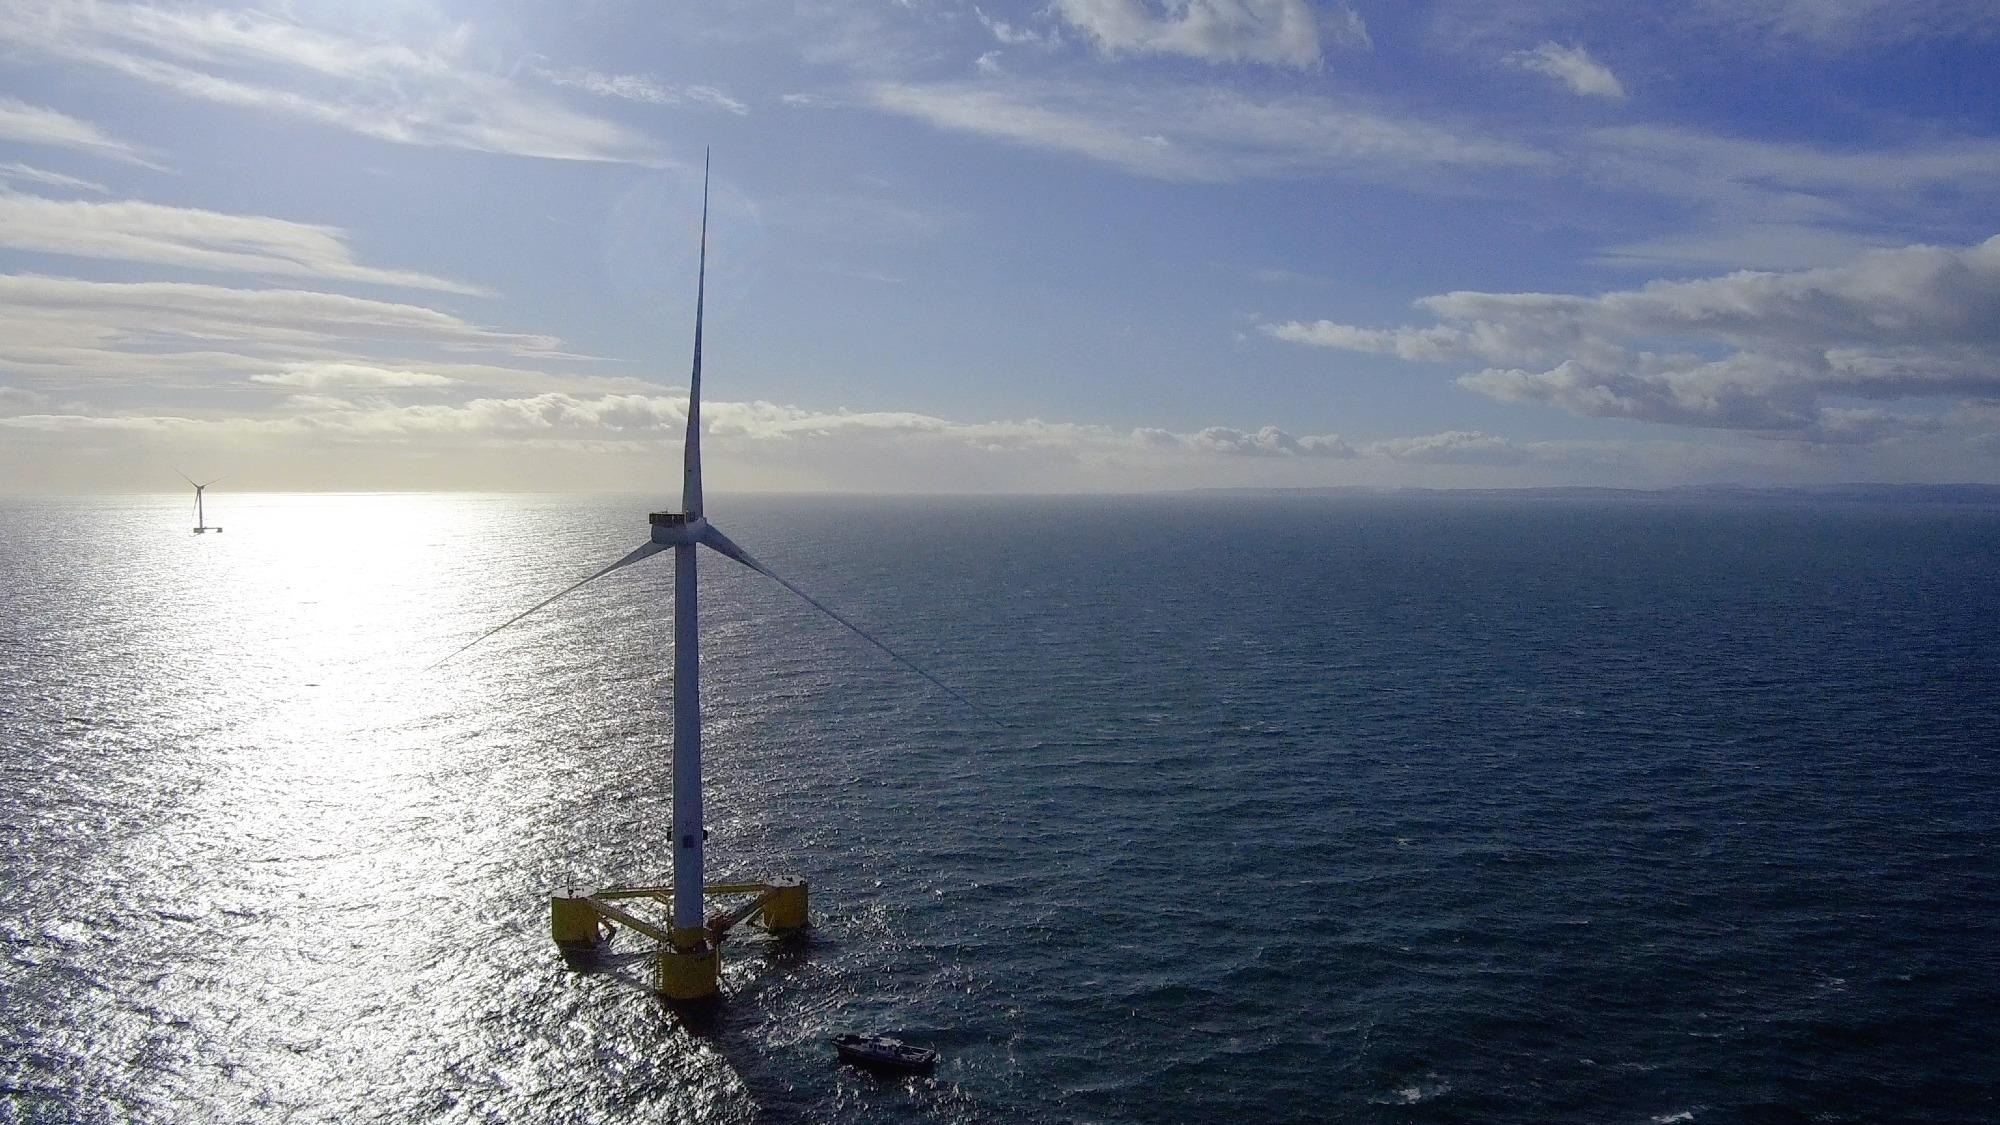 The World's Largest Floating Windfarm is Now Fully Commissioned and Delivering Green Electricity to Scotland's Grid